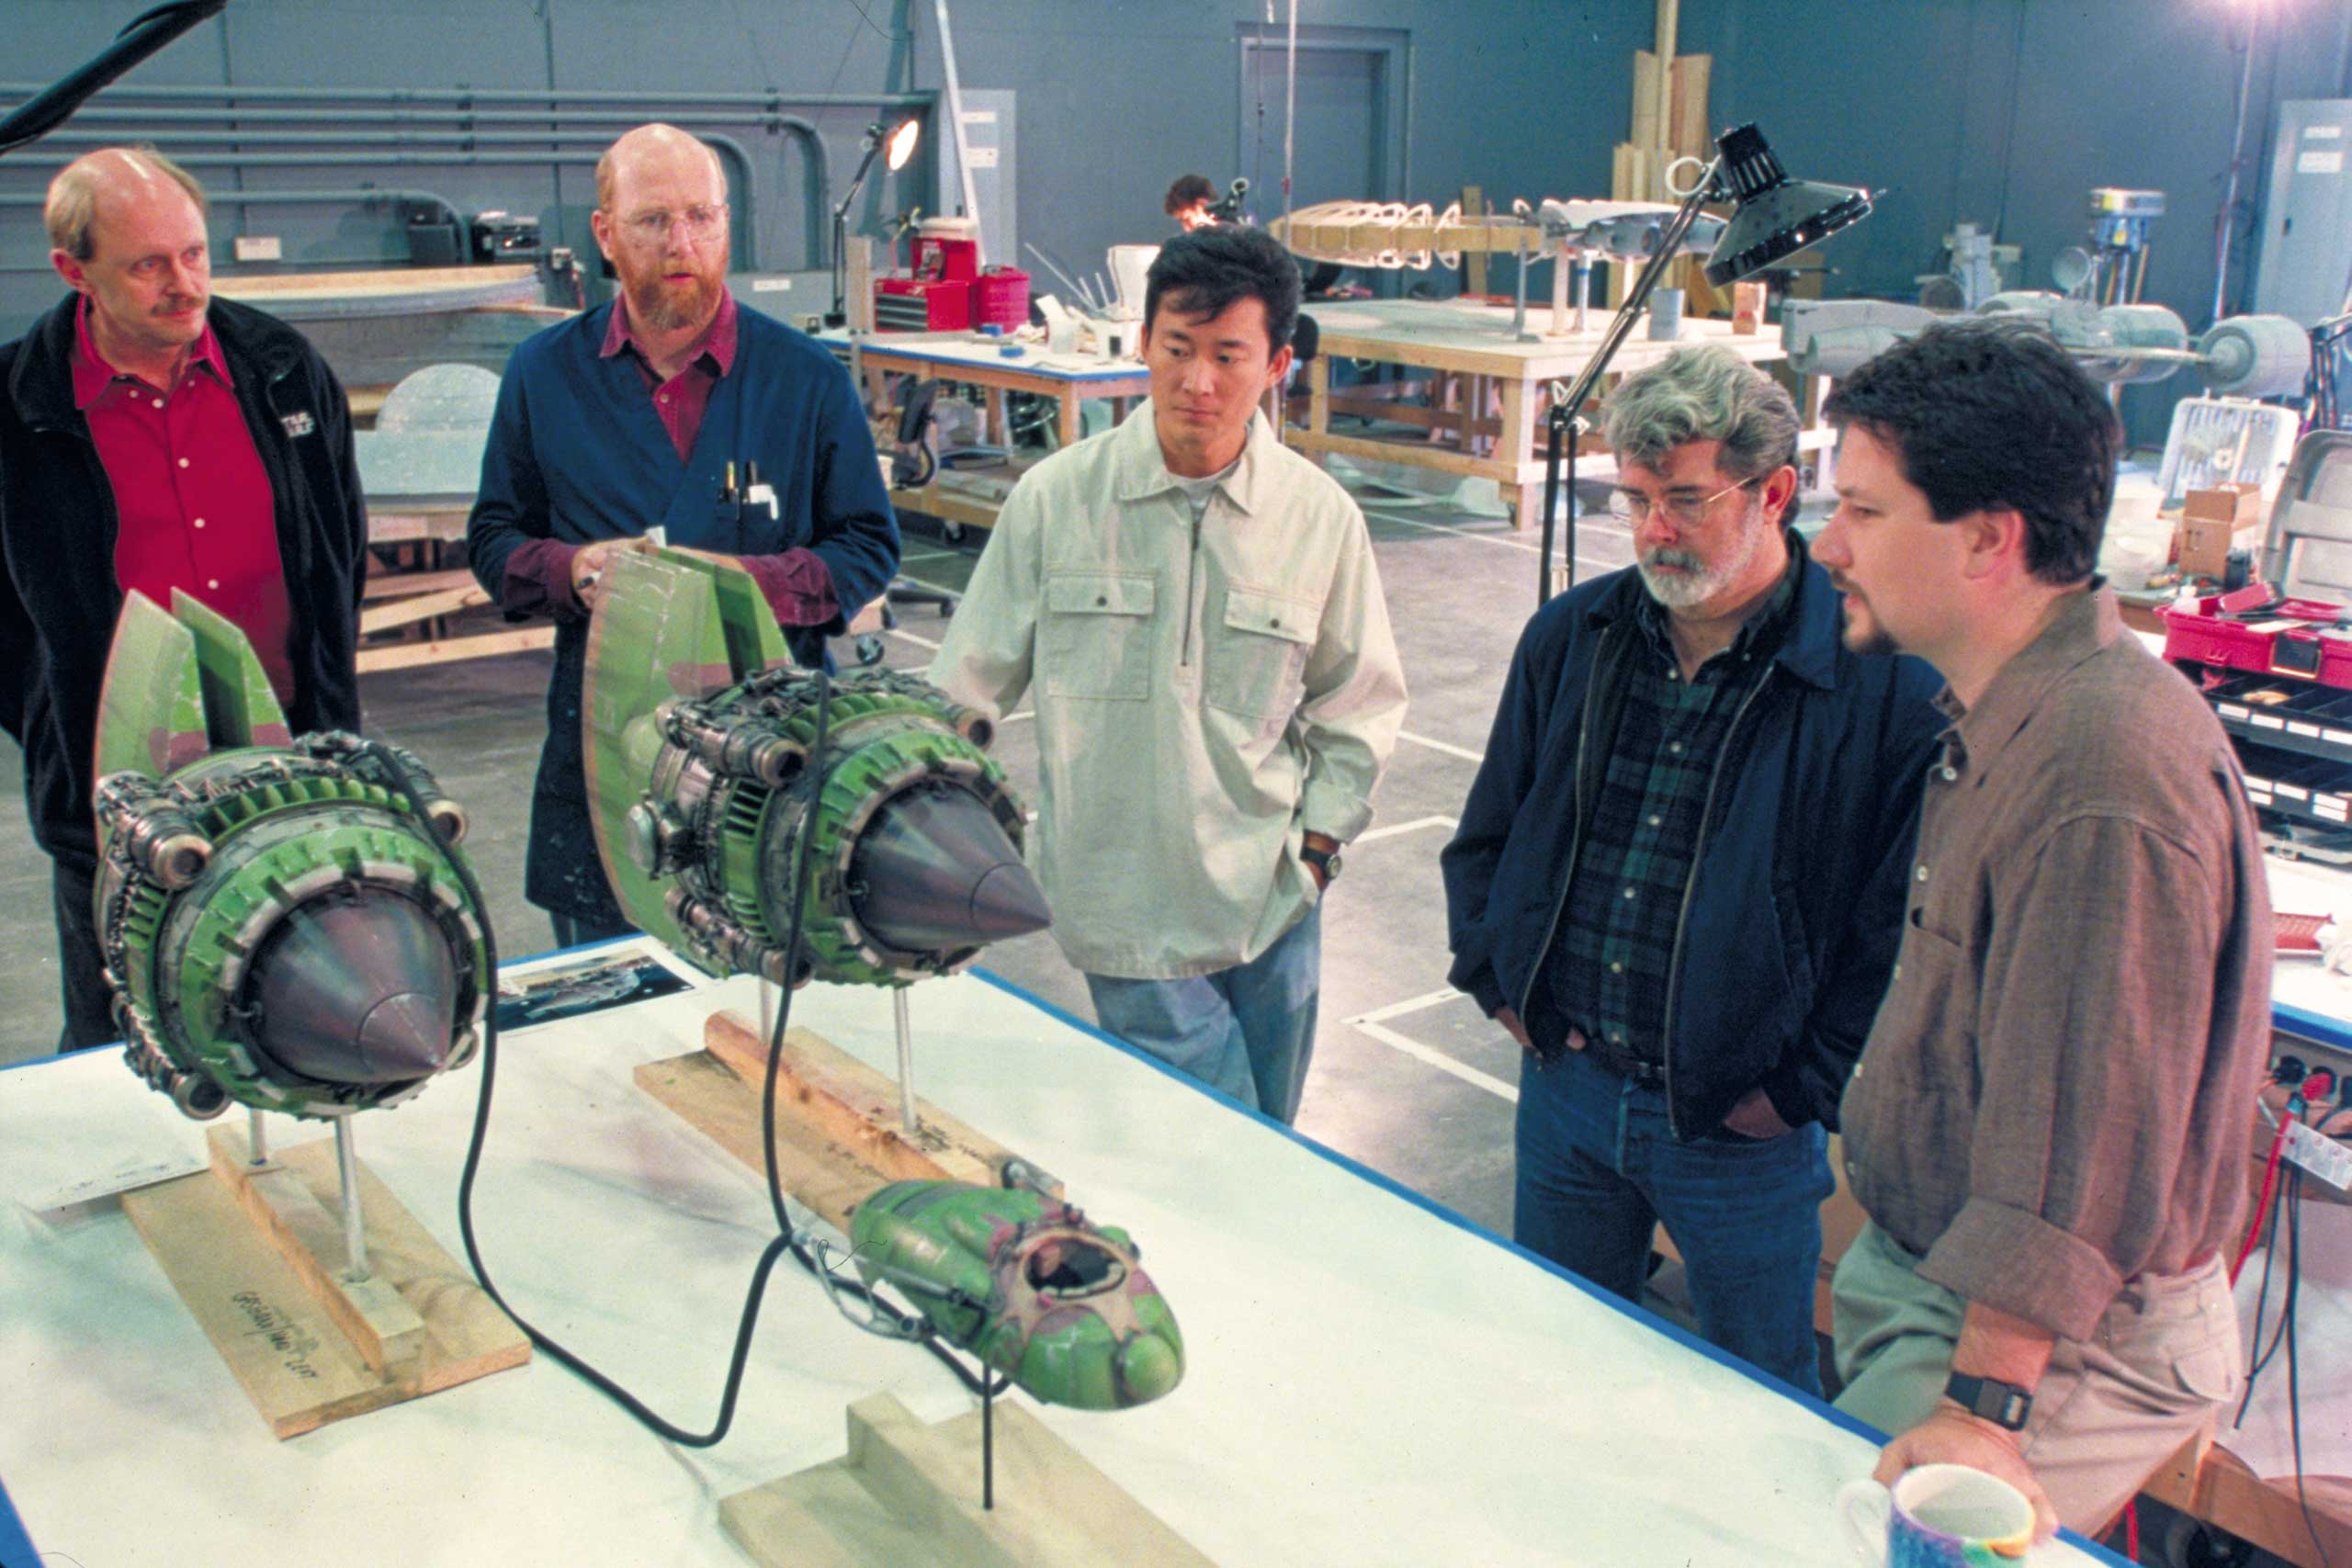 Lucas inspects a model pod racer for <i>Star Wars: Episode I - The Phantom Menace</i>.